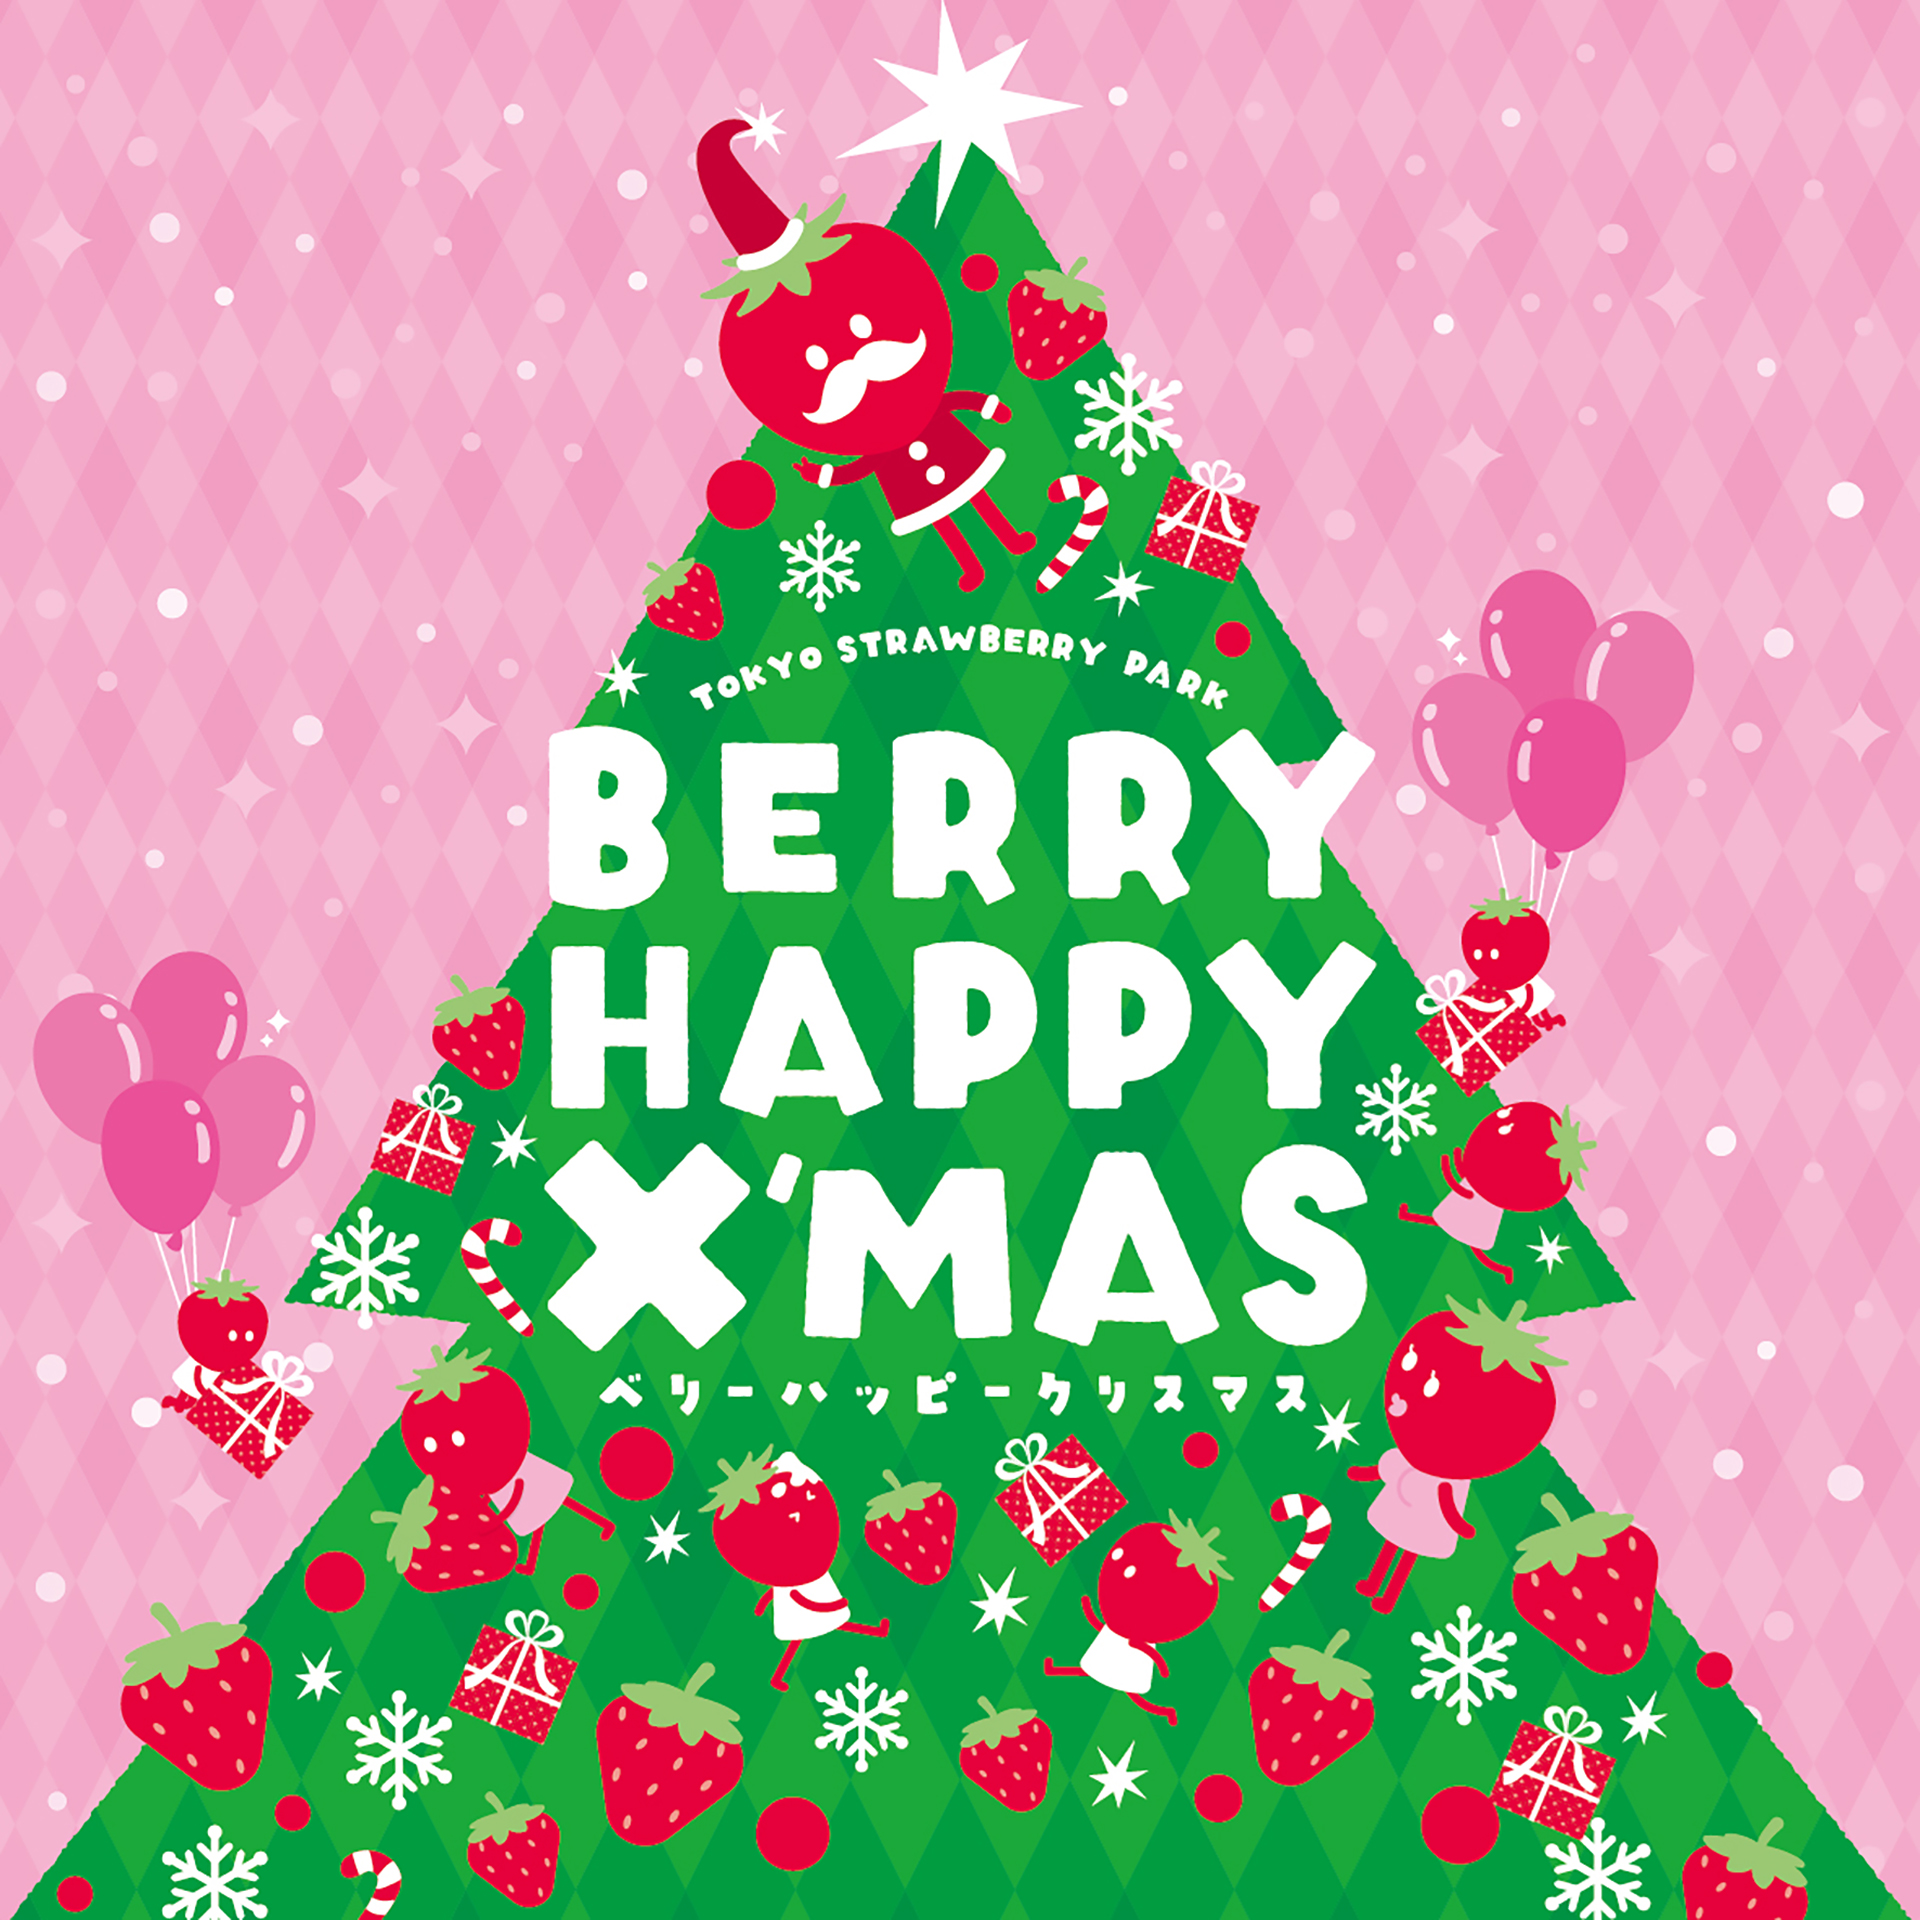 BERRY HAPPY X'MAS